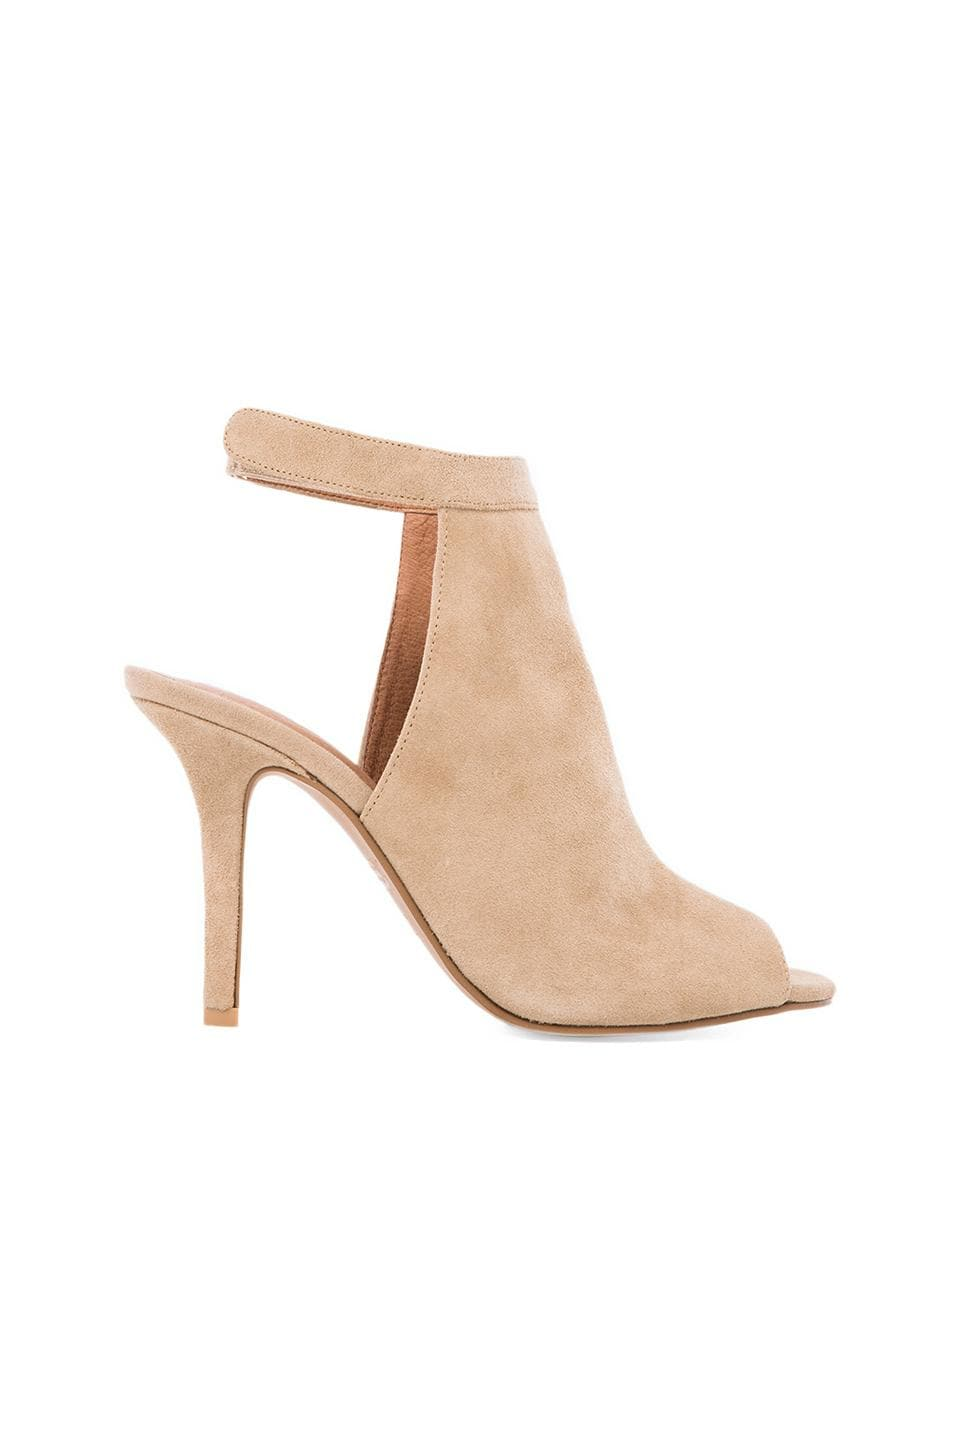 Jeffrey Campbell Lorah Open Toe Bootie in Nude Suede